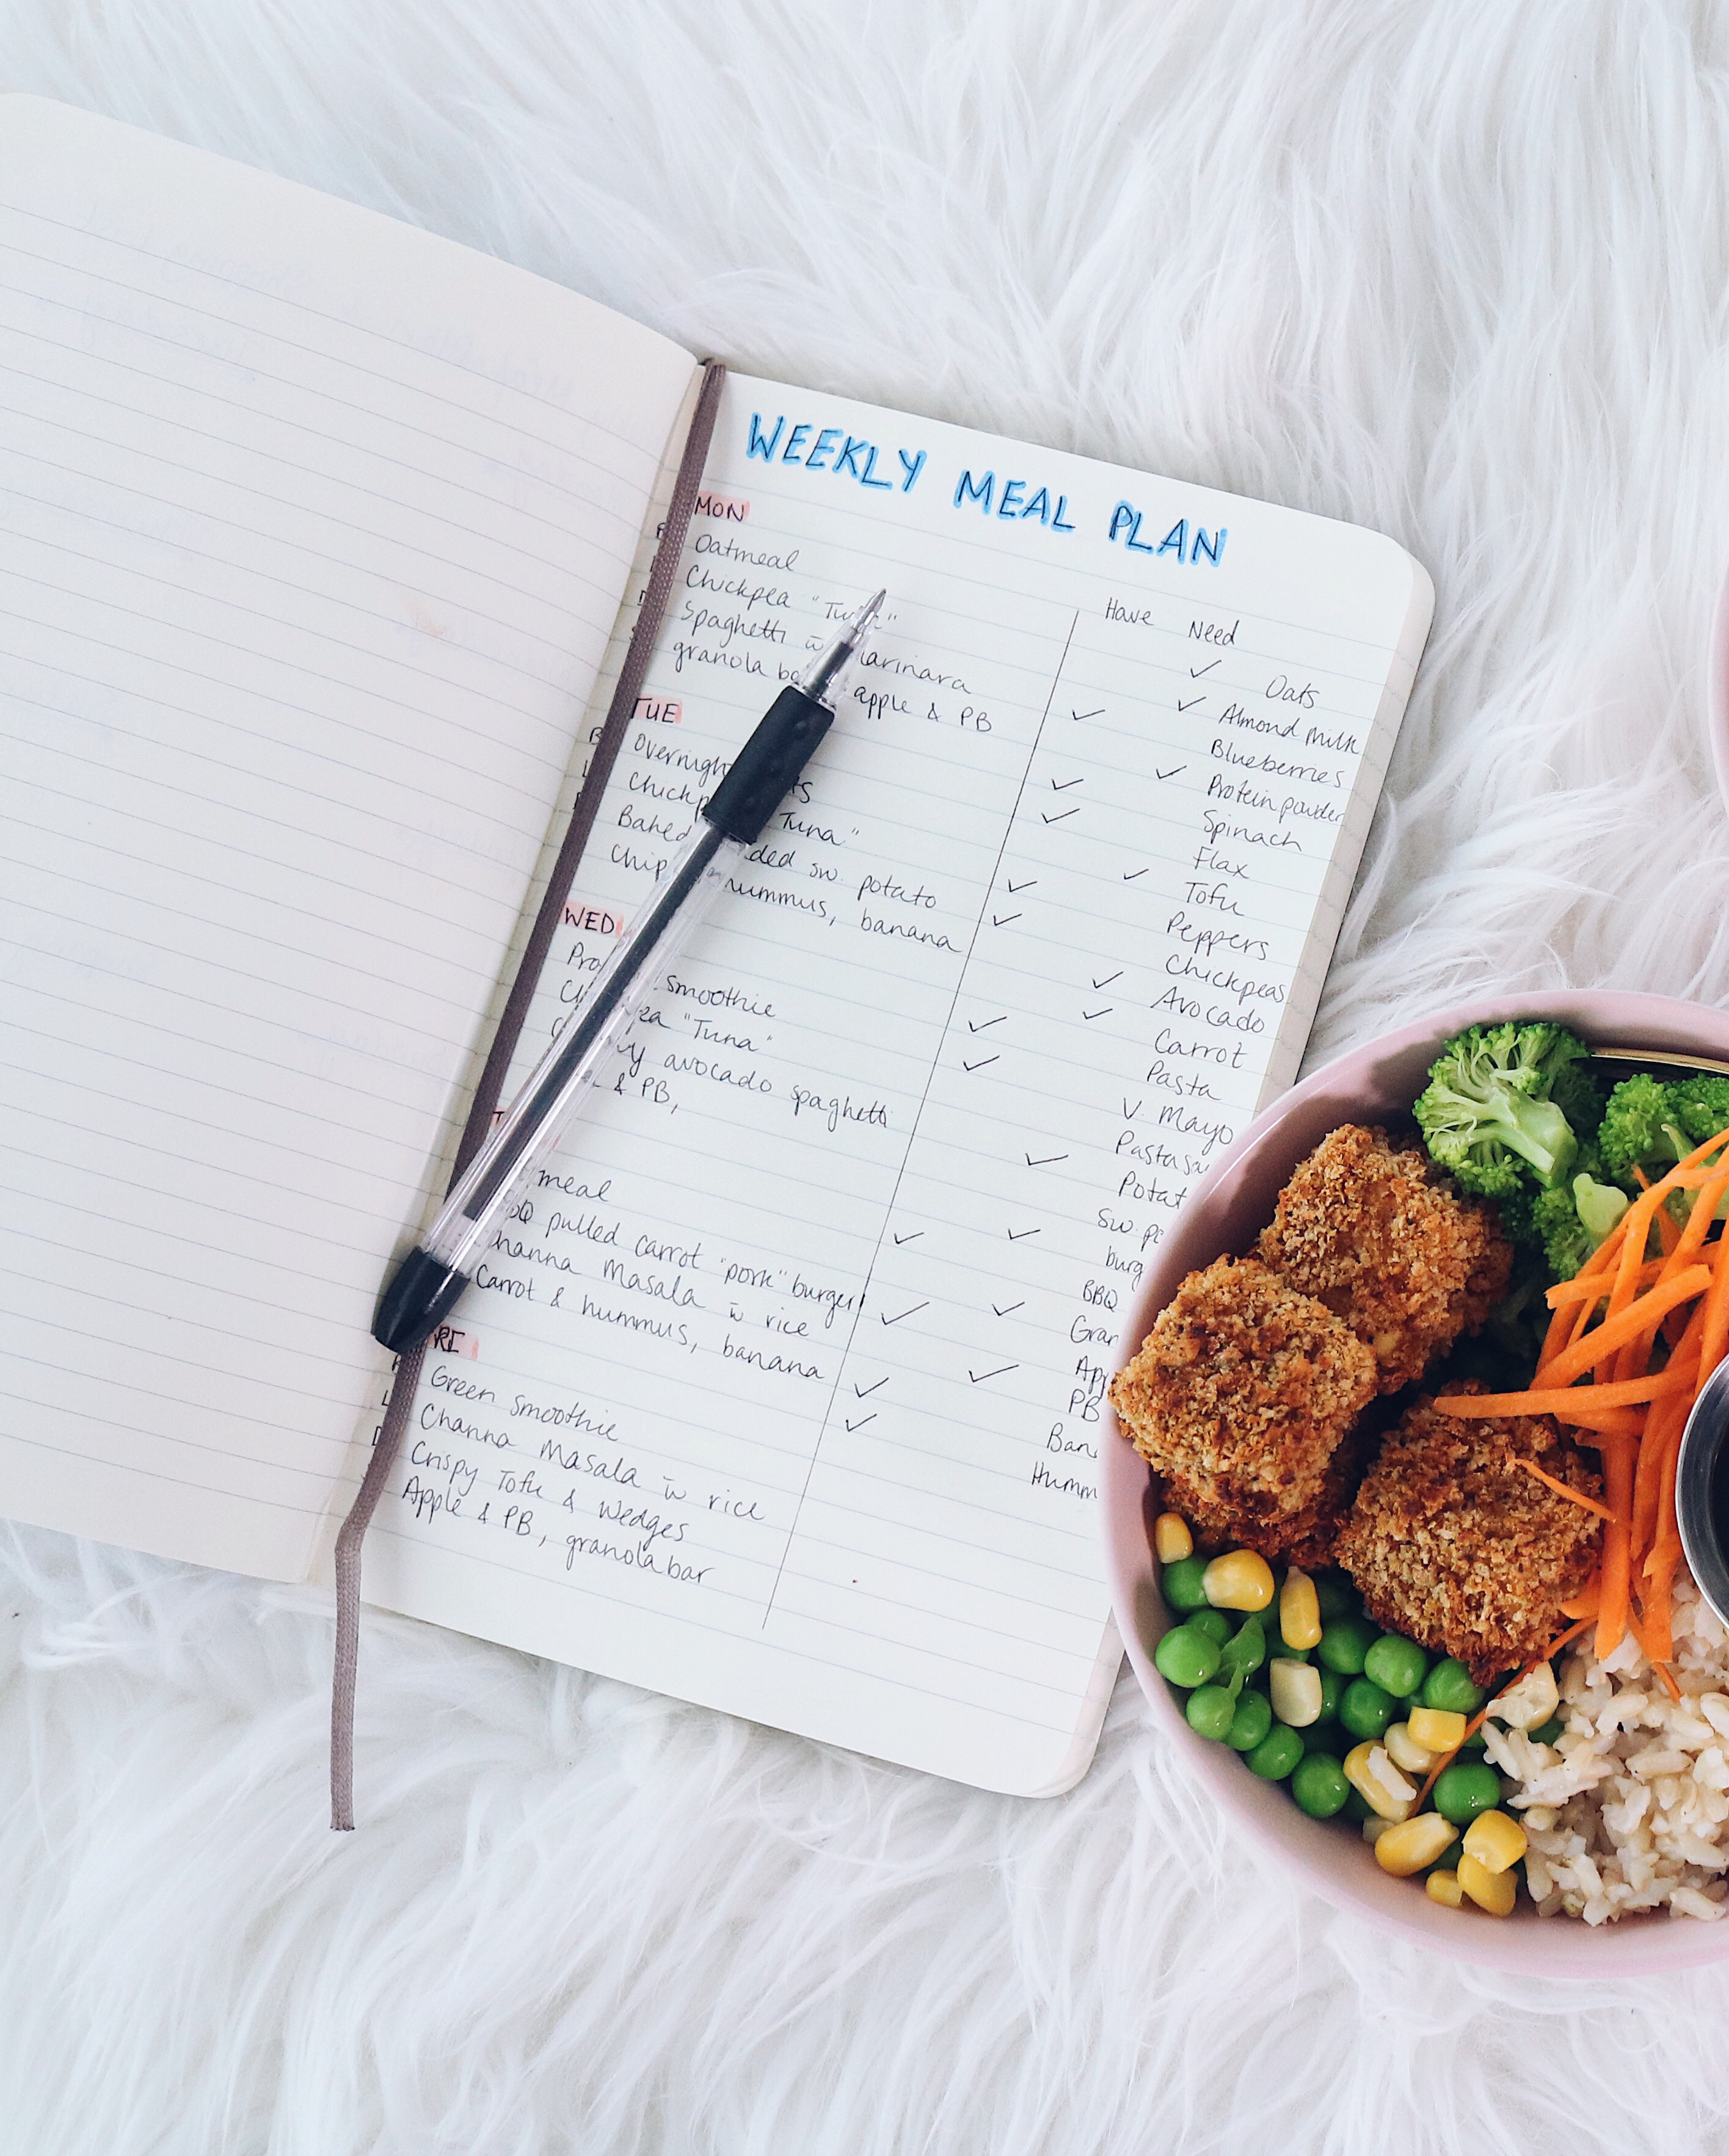 Simple Rules For A Healthy Life Share And Spread The: Meal Plan Journal Spread DIY